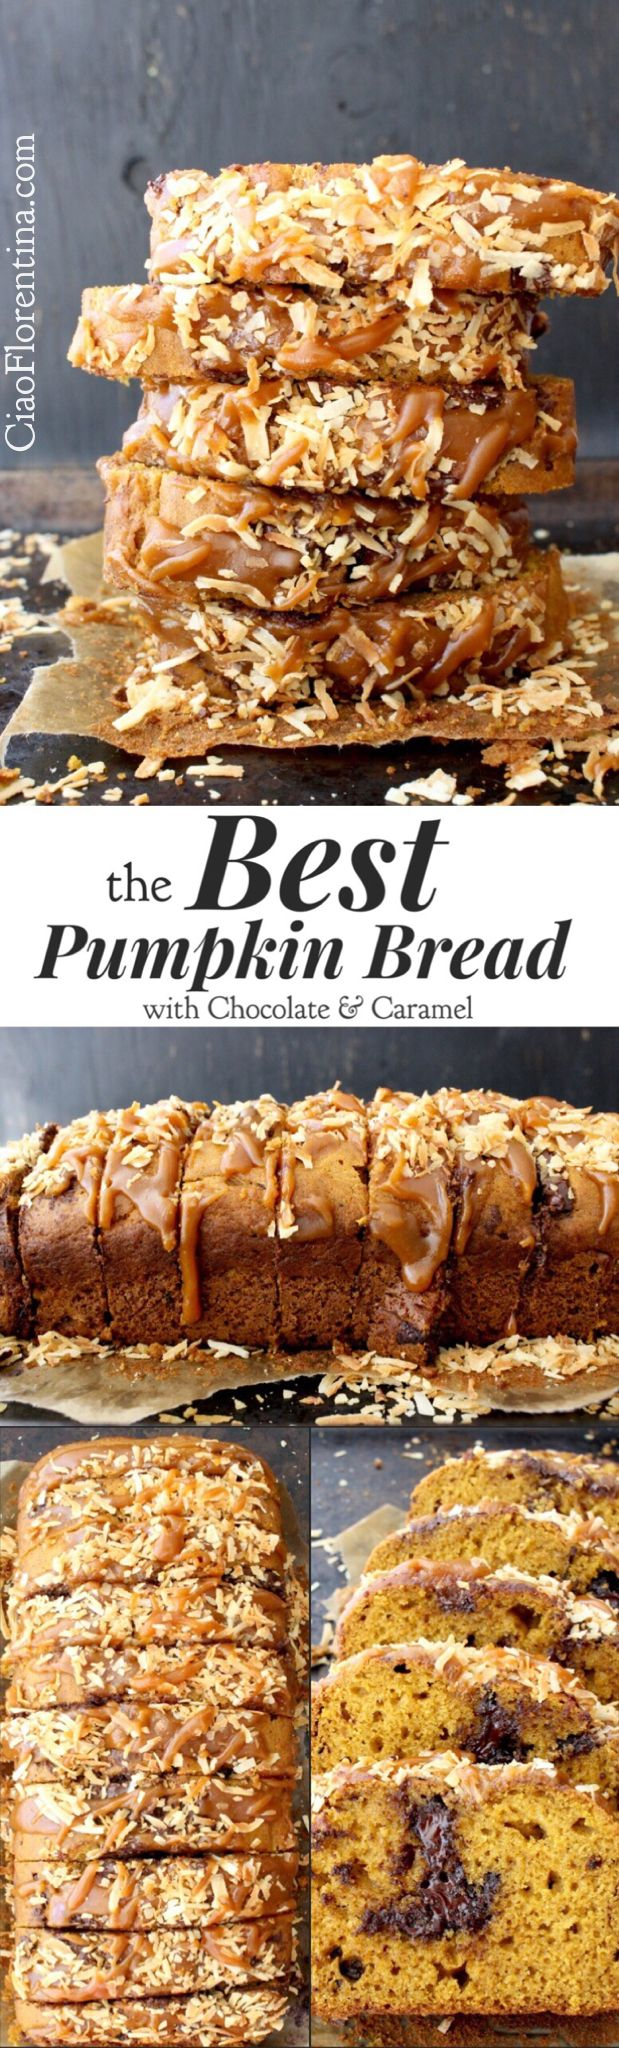 The Best and Easy Pumpkin Bread Recipe from Scratch with Canned Pumpkin Purée, Chocolate Chips and Caramel | CiaoFlorentina.com @CiaoFlorentina